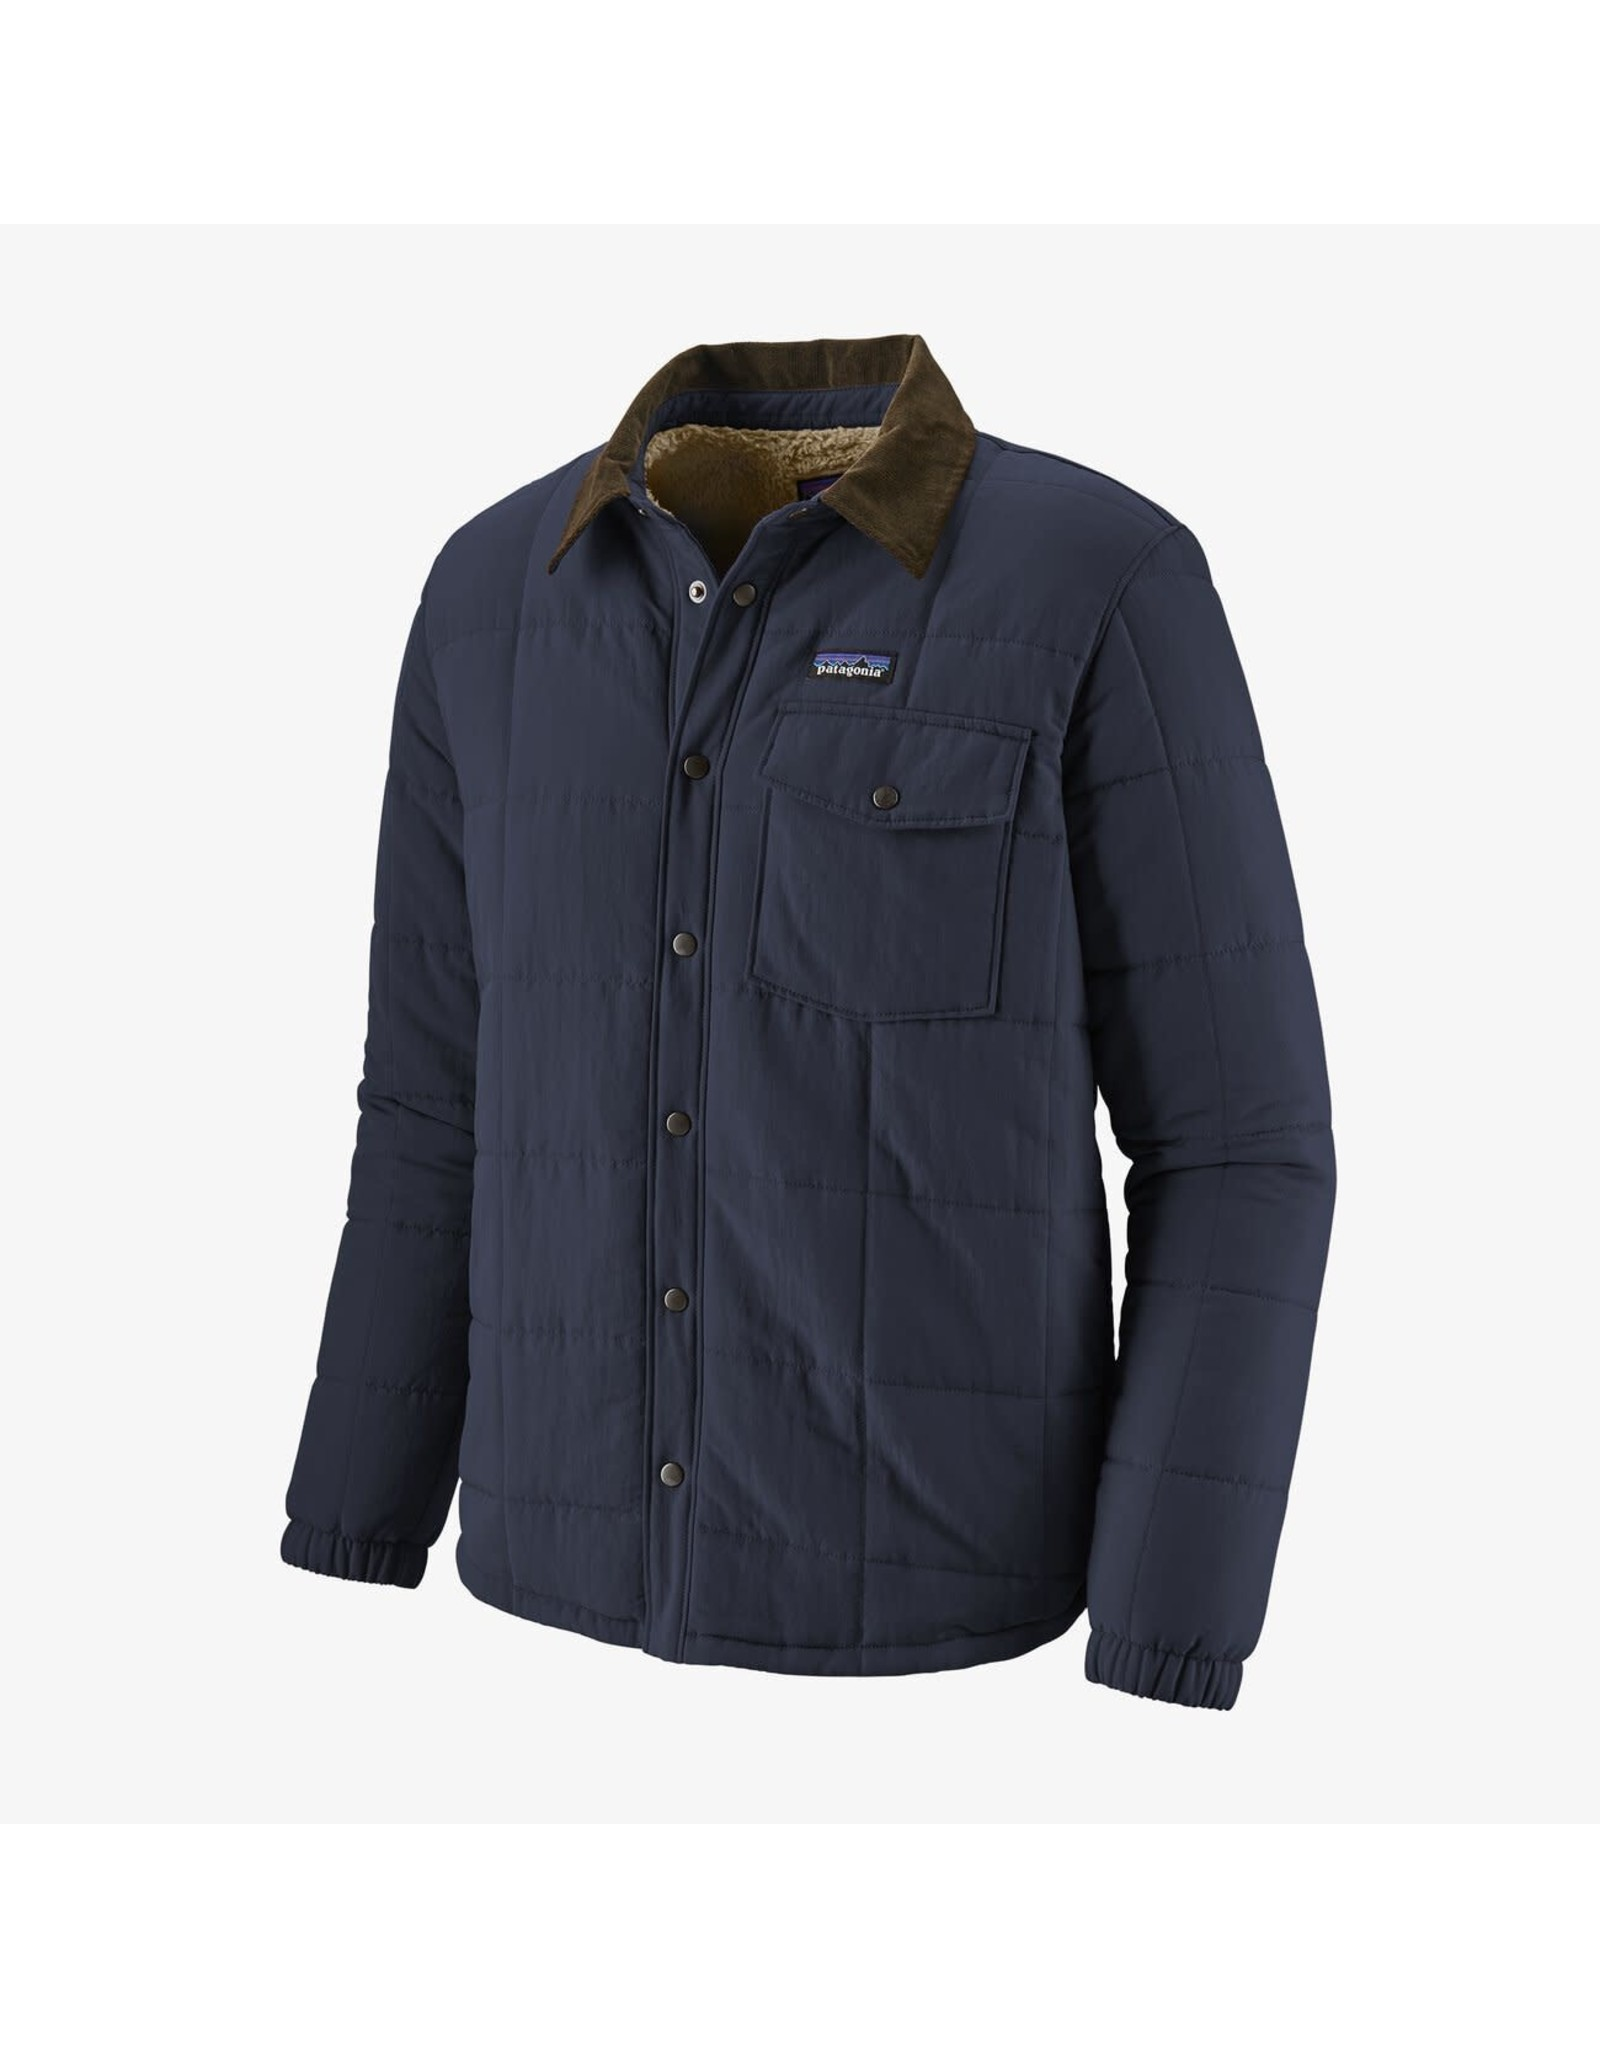 patagonia M's Isthmus Quilted Shirt Jacket